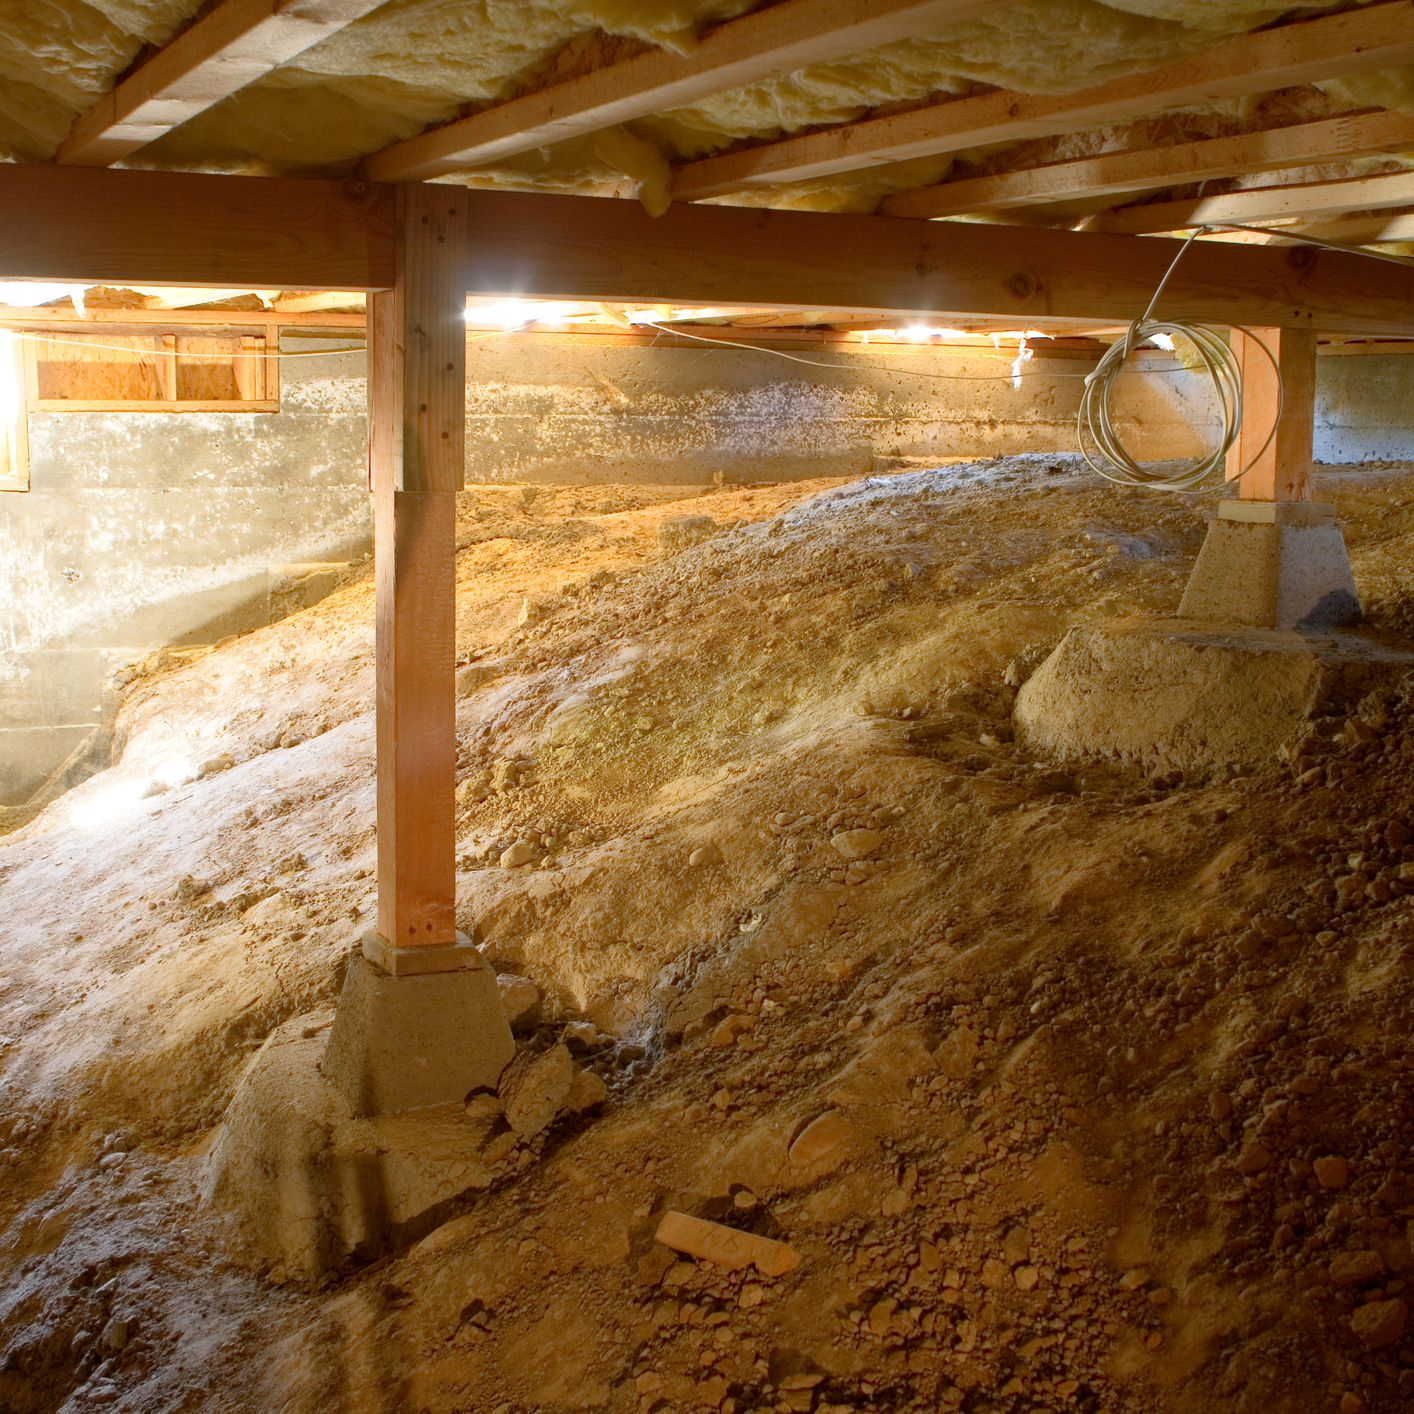 fix water problems in the crawl space